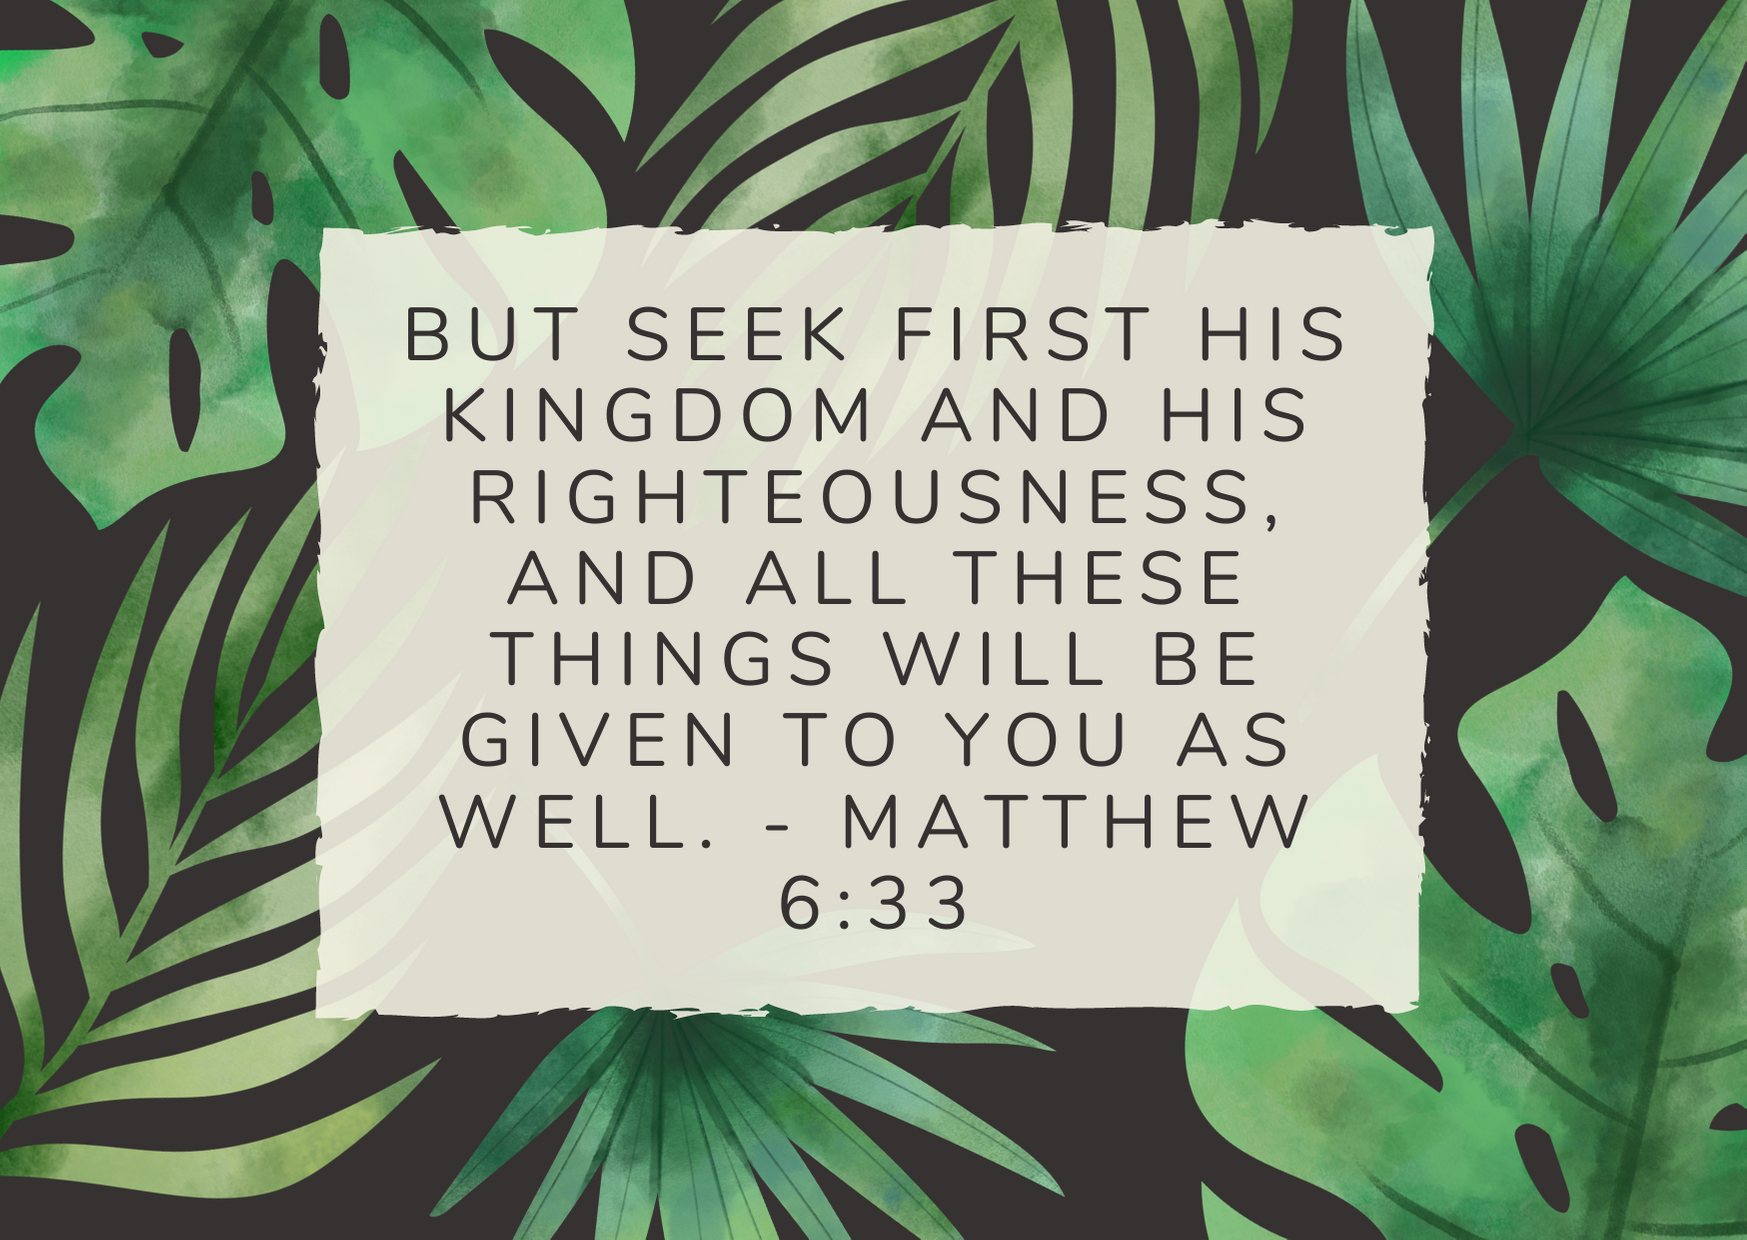 But seek first his kingdom and his righteousness, and all these things will be given to you as well. - Matthew 6:33